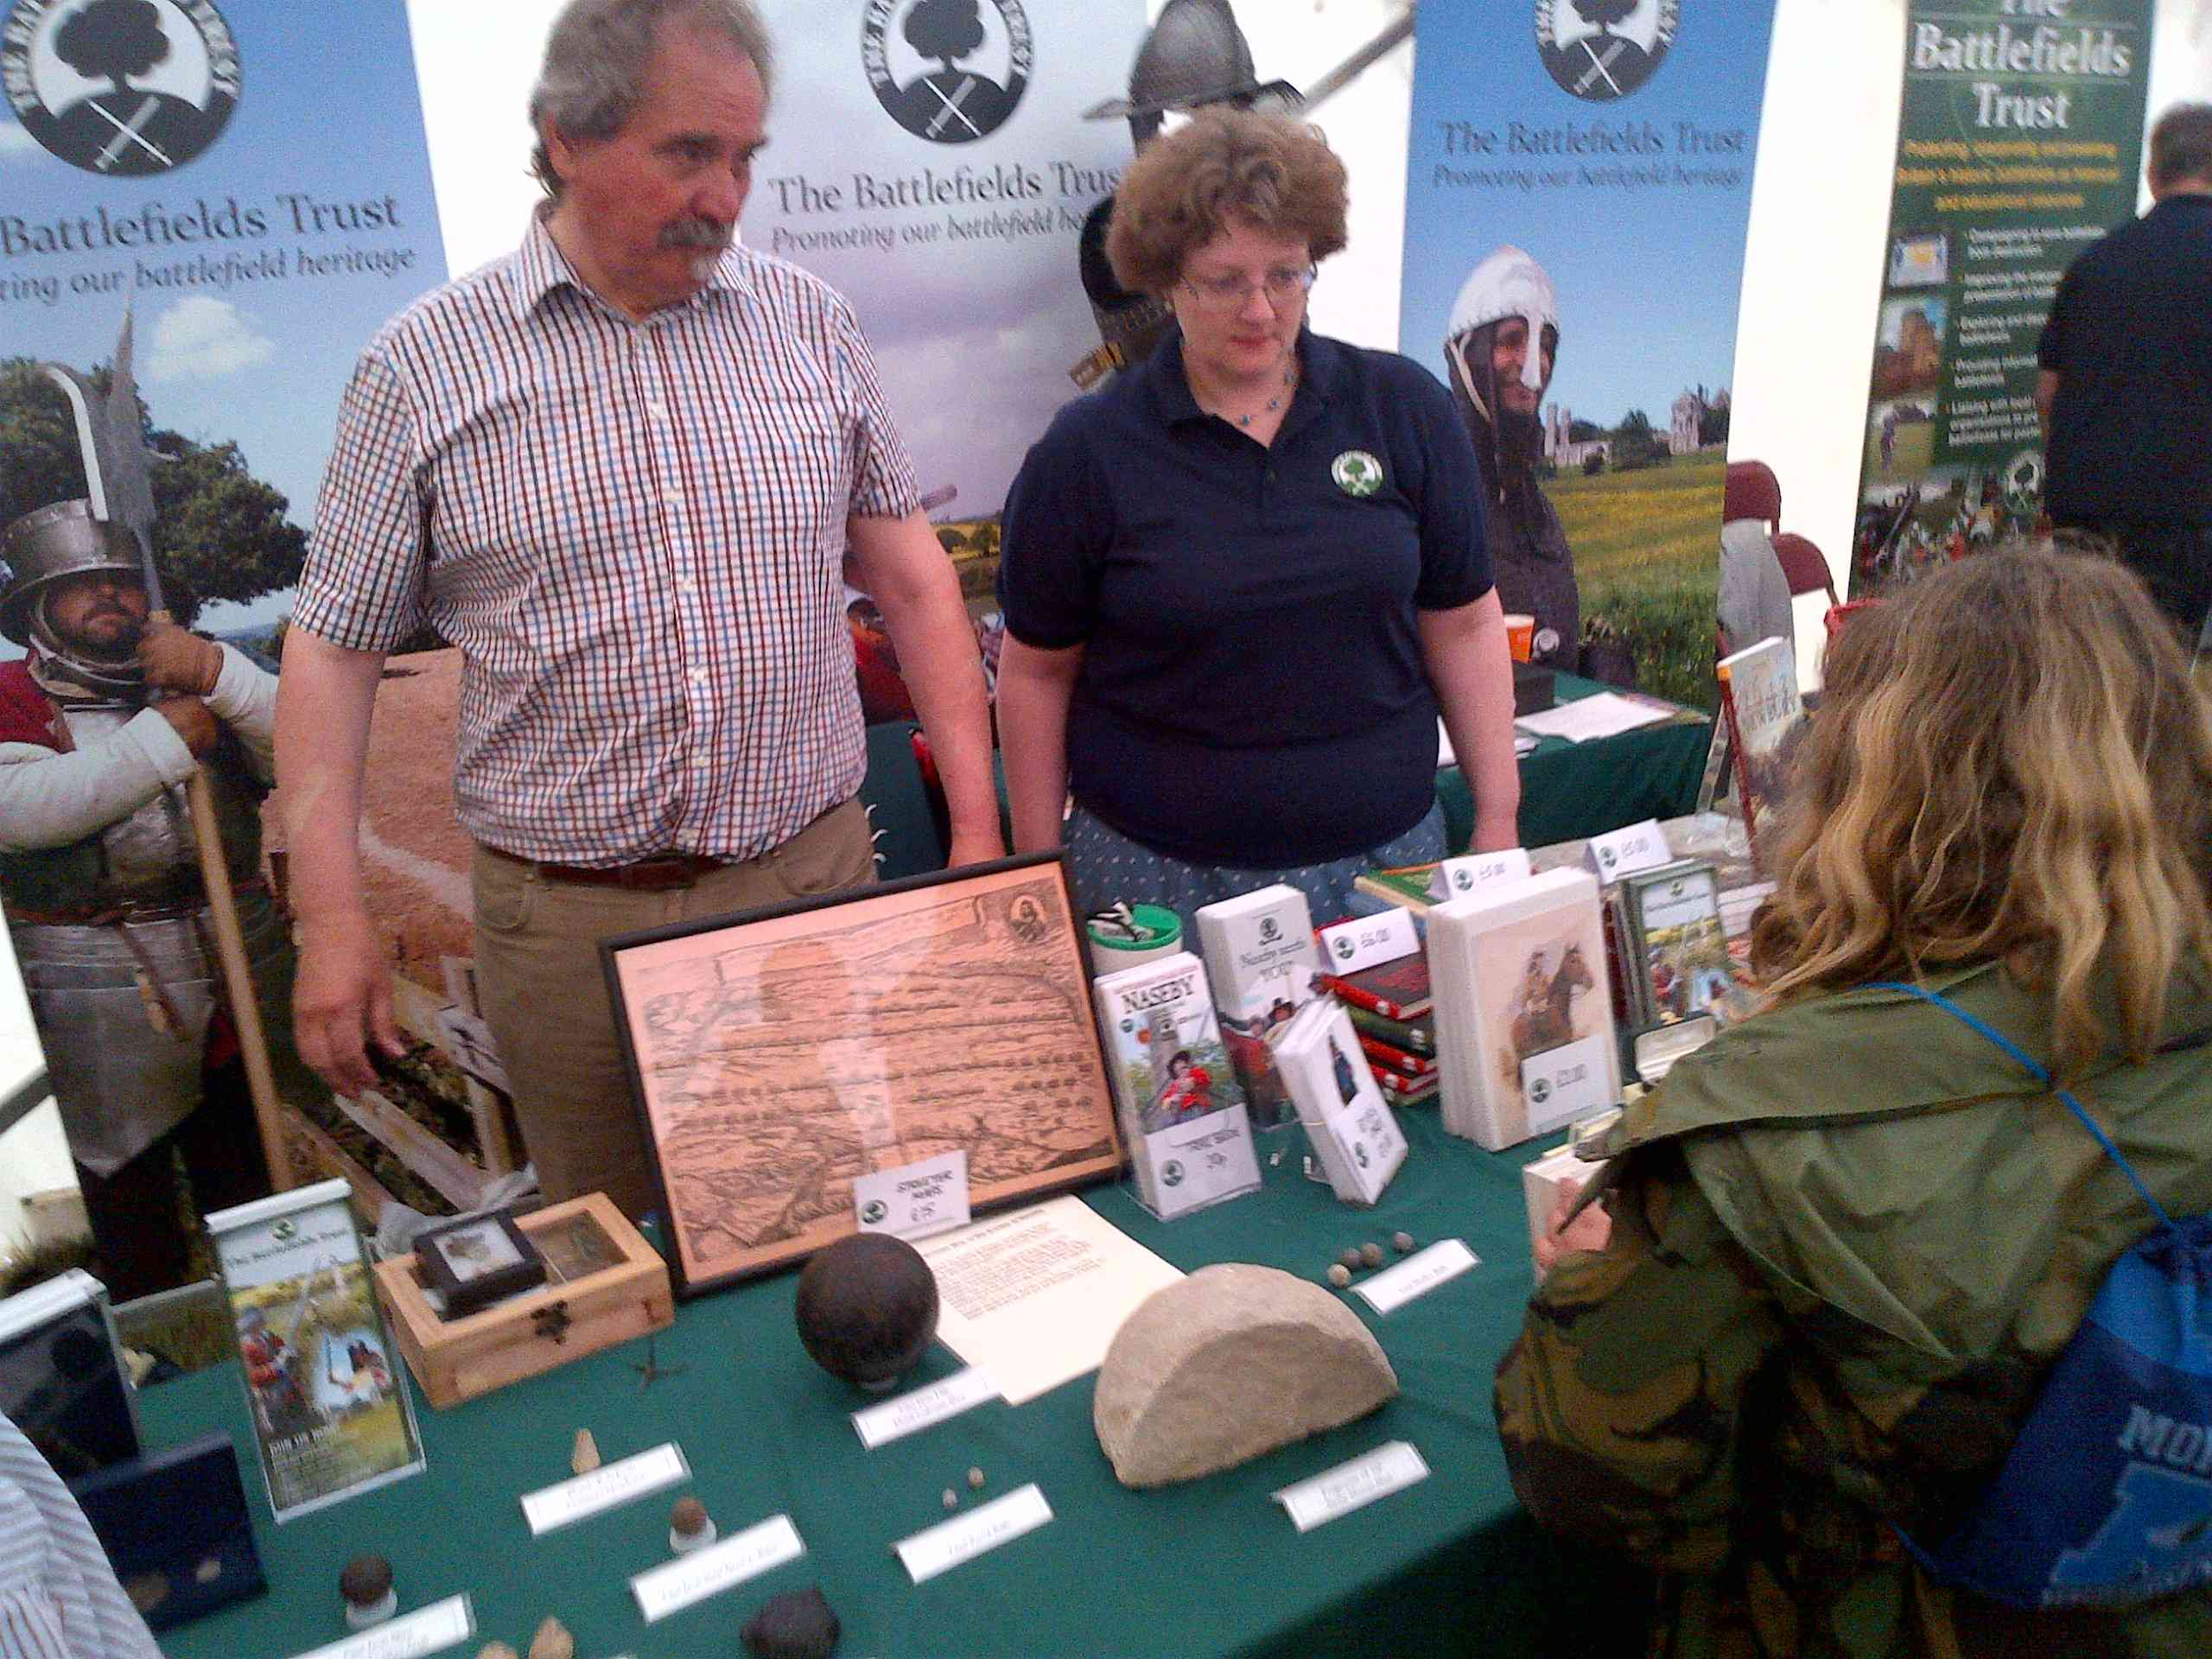 Alan and Nichola Turton (Wessex Region)  with some of their collection of civil war and other archaeological finds.